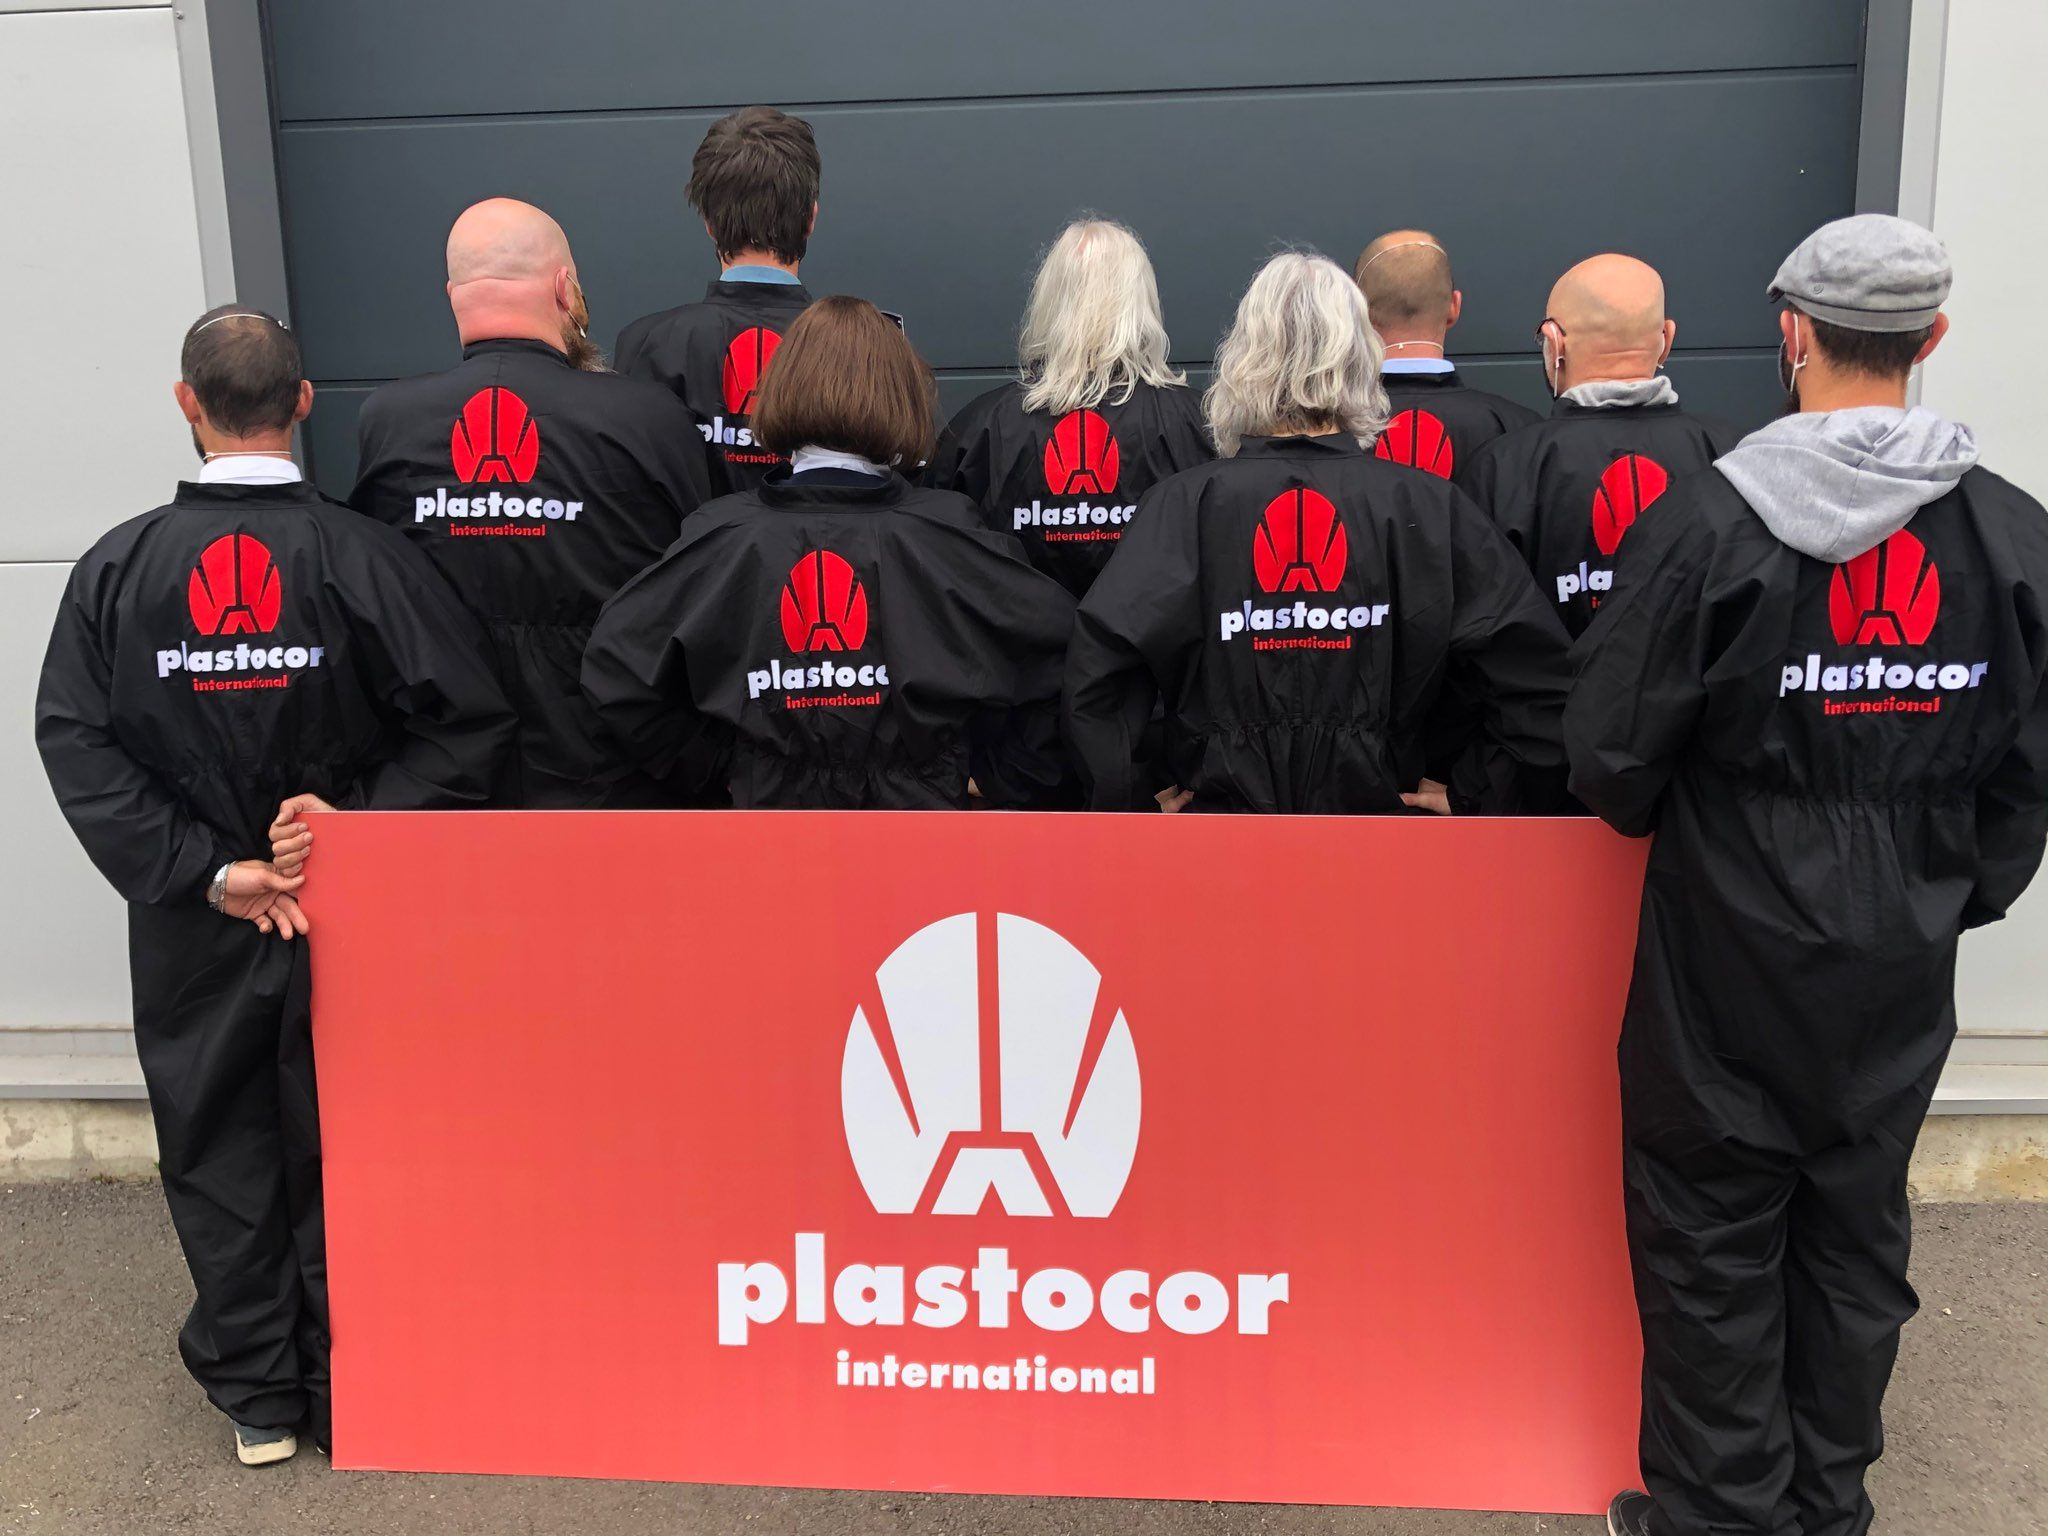 plastocor® committed to providing stability, reliability and continuity of business during Covid-19 crisis.